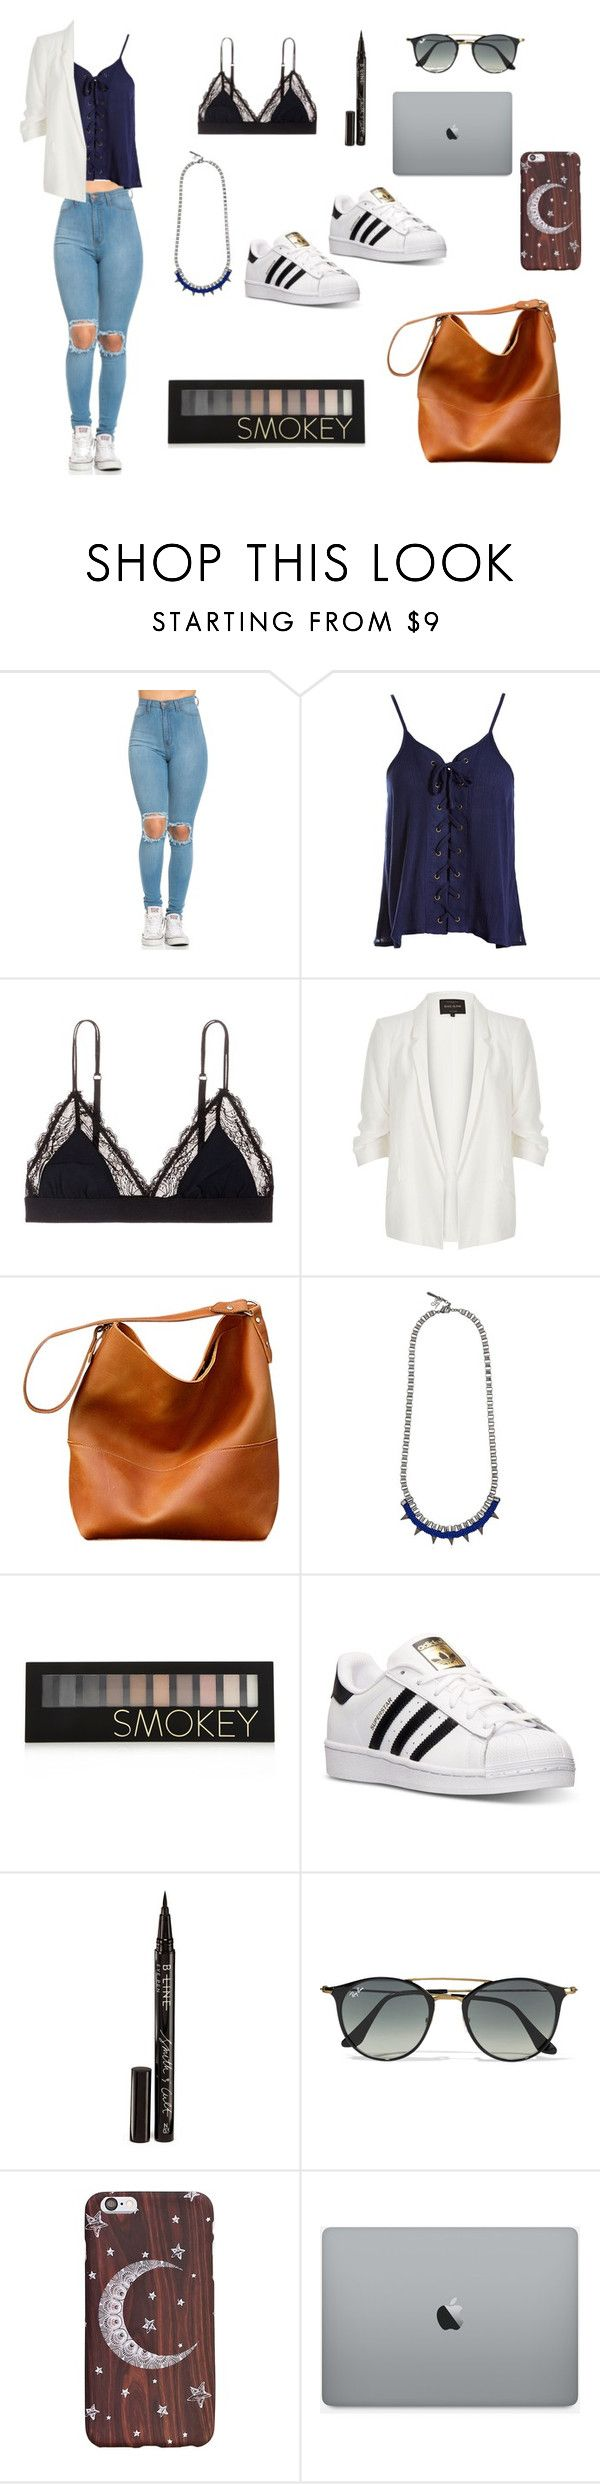 """""""60"""" by agusdiaz00 ❤ liked on Polyvore featuring Sans Souci, LoveStories, River Island, John & Pearl, Forever 21, adidas, Smith & Cult and Ray-Ban"""